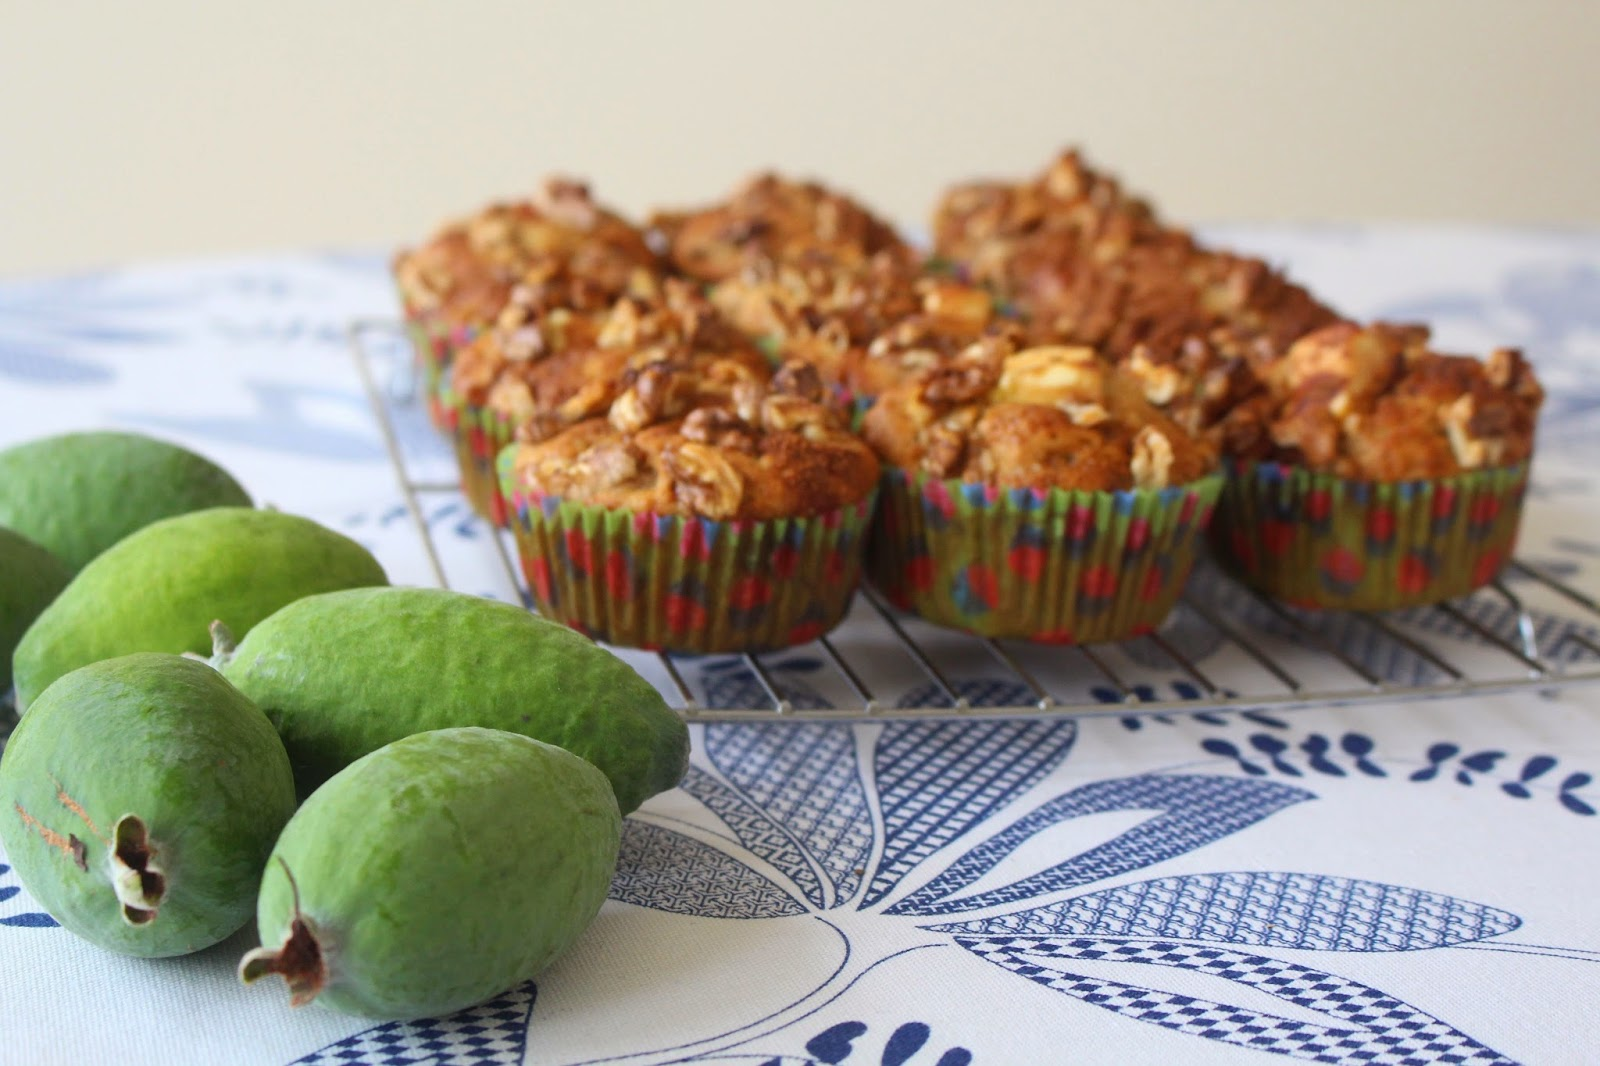 Incredibly Edible Feijoa Muffins With Walnut Amp Cinnamon